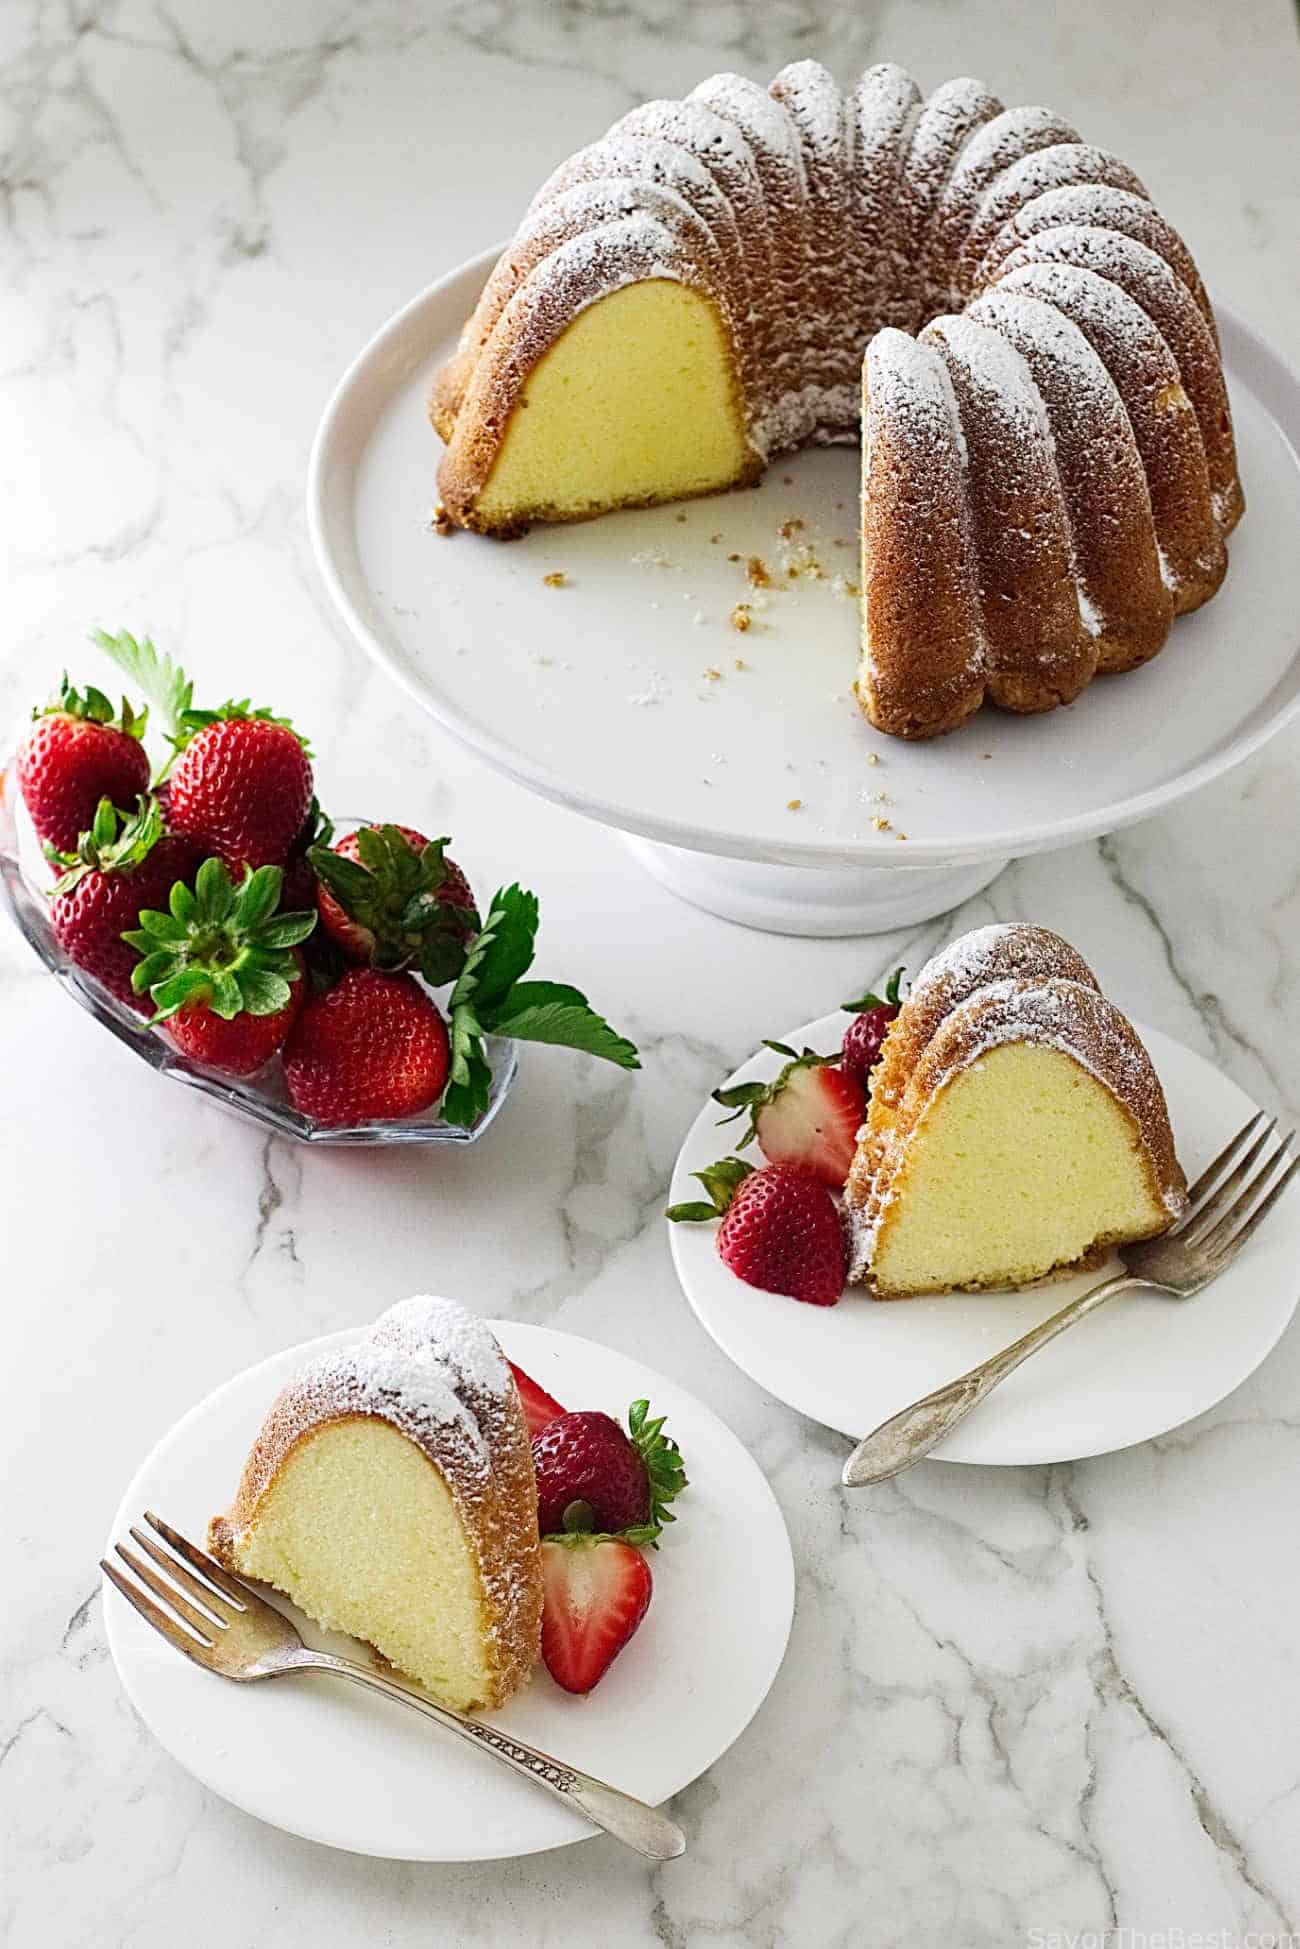 Old Fashioned Cream Cheese Pound Cake Savor The Best